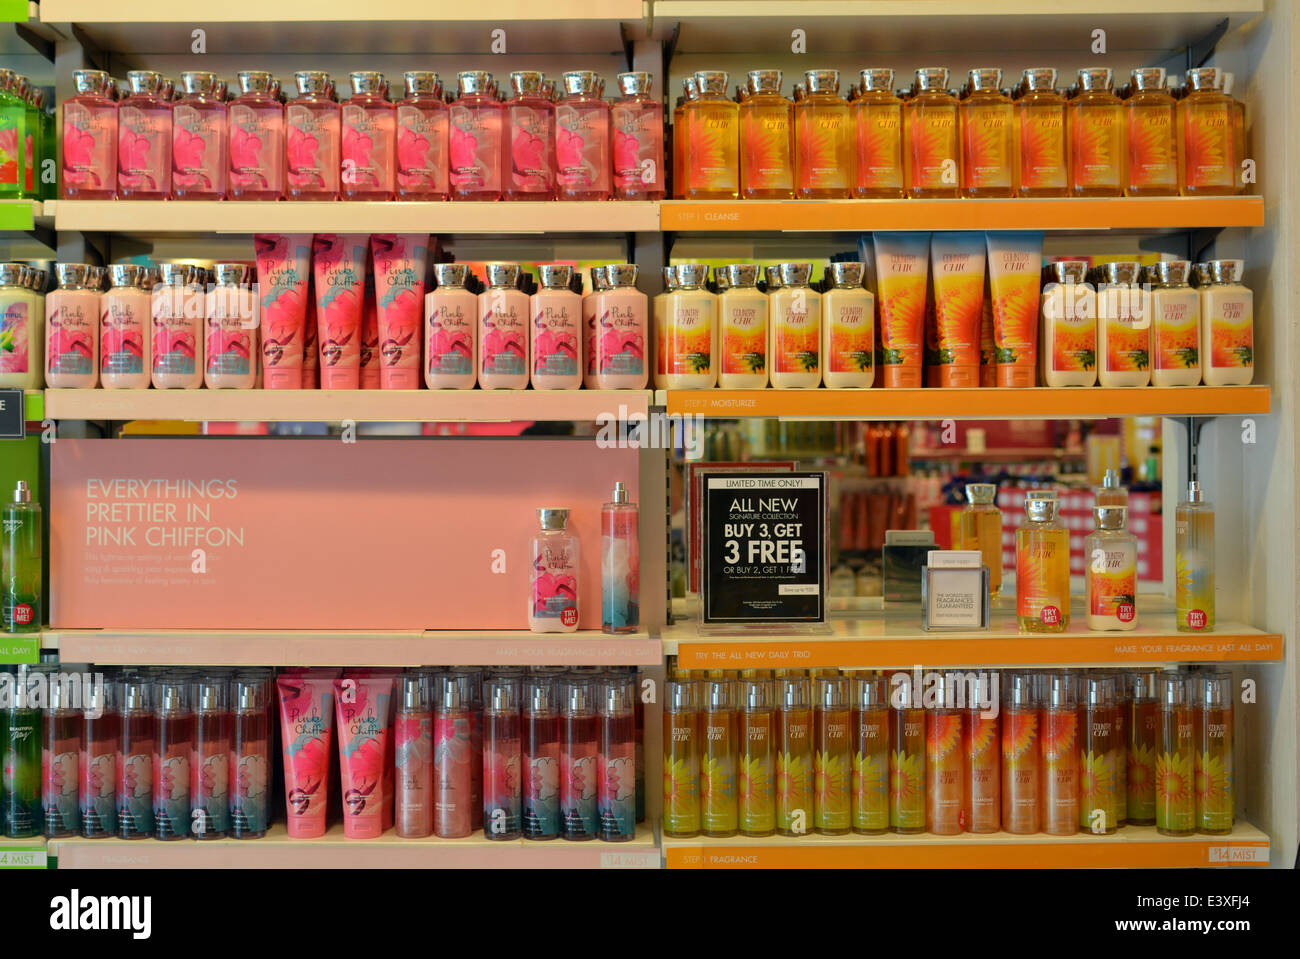 Scented soaps   perfumes for sale at a Bath   Body Works store on Austin  Street in Forest Hills  Queens  New York City. Scented soaps   perfumes for sale at a Bath   Body Works store on